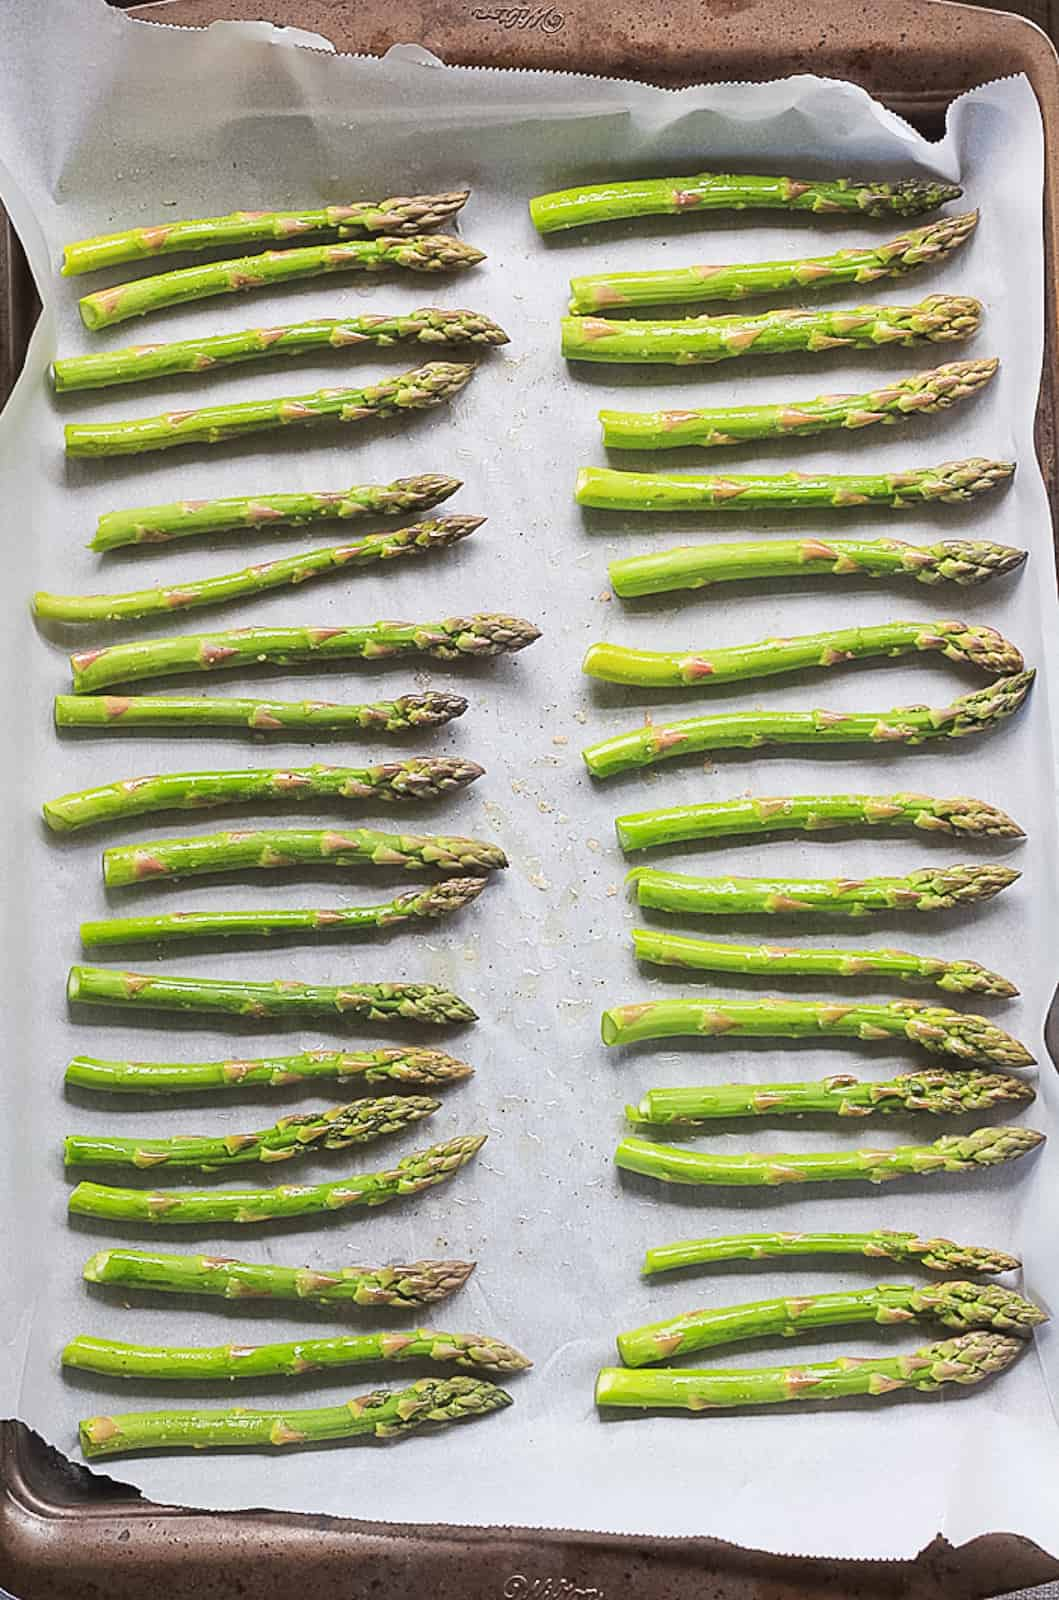 Raw asparagus ready for the oven on a parchment paper lined baking sheet.